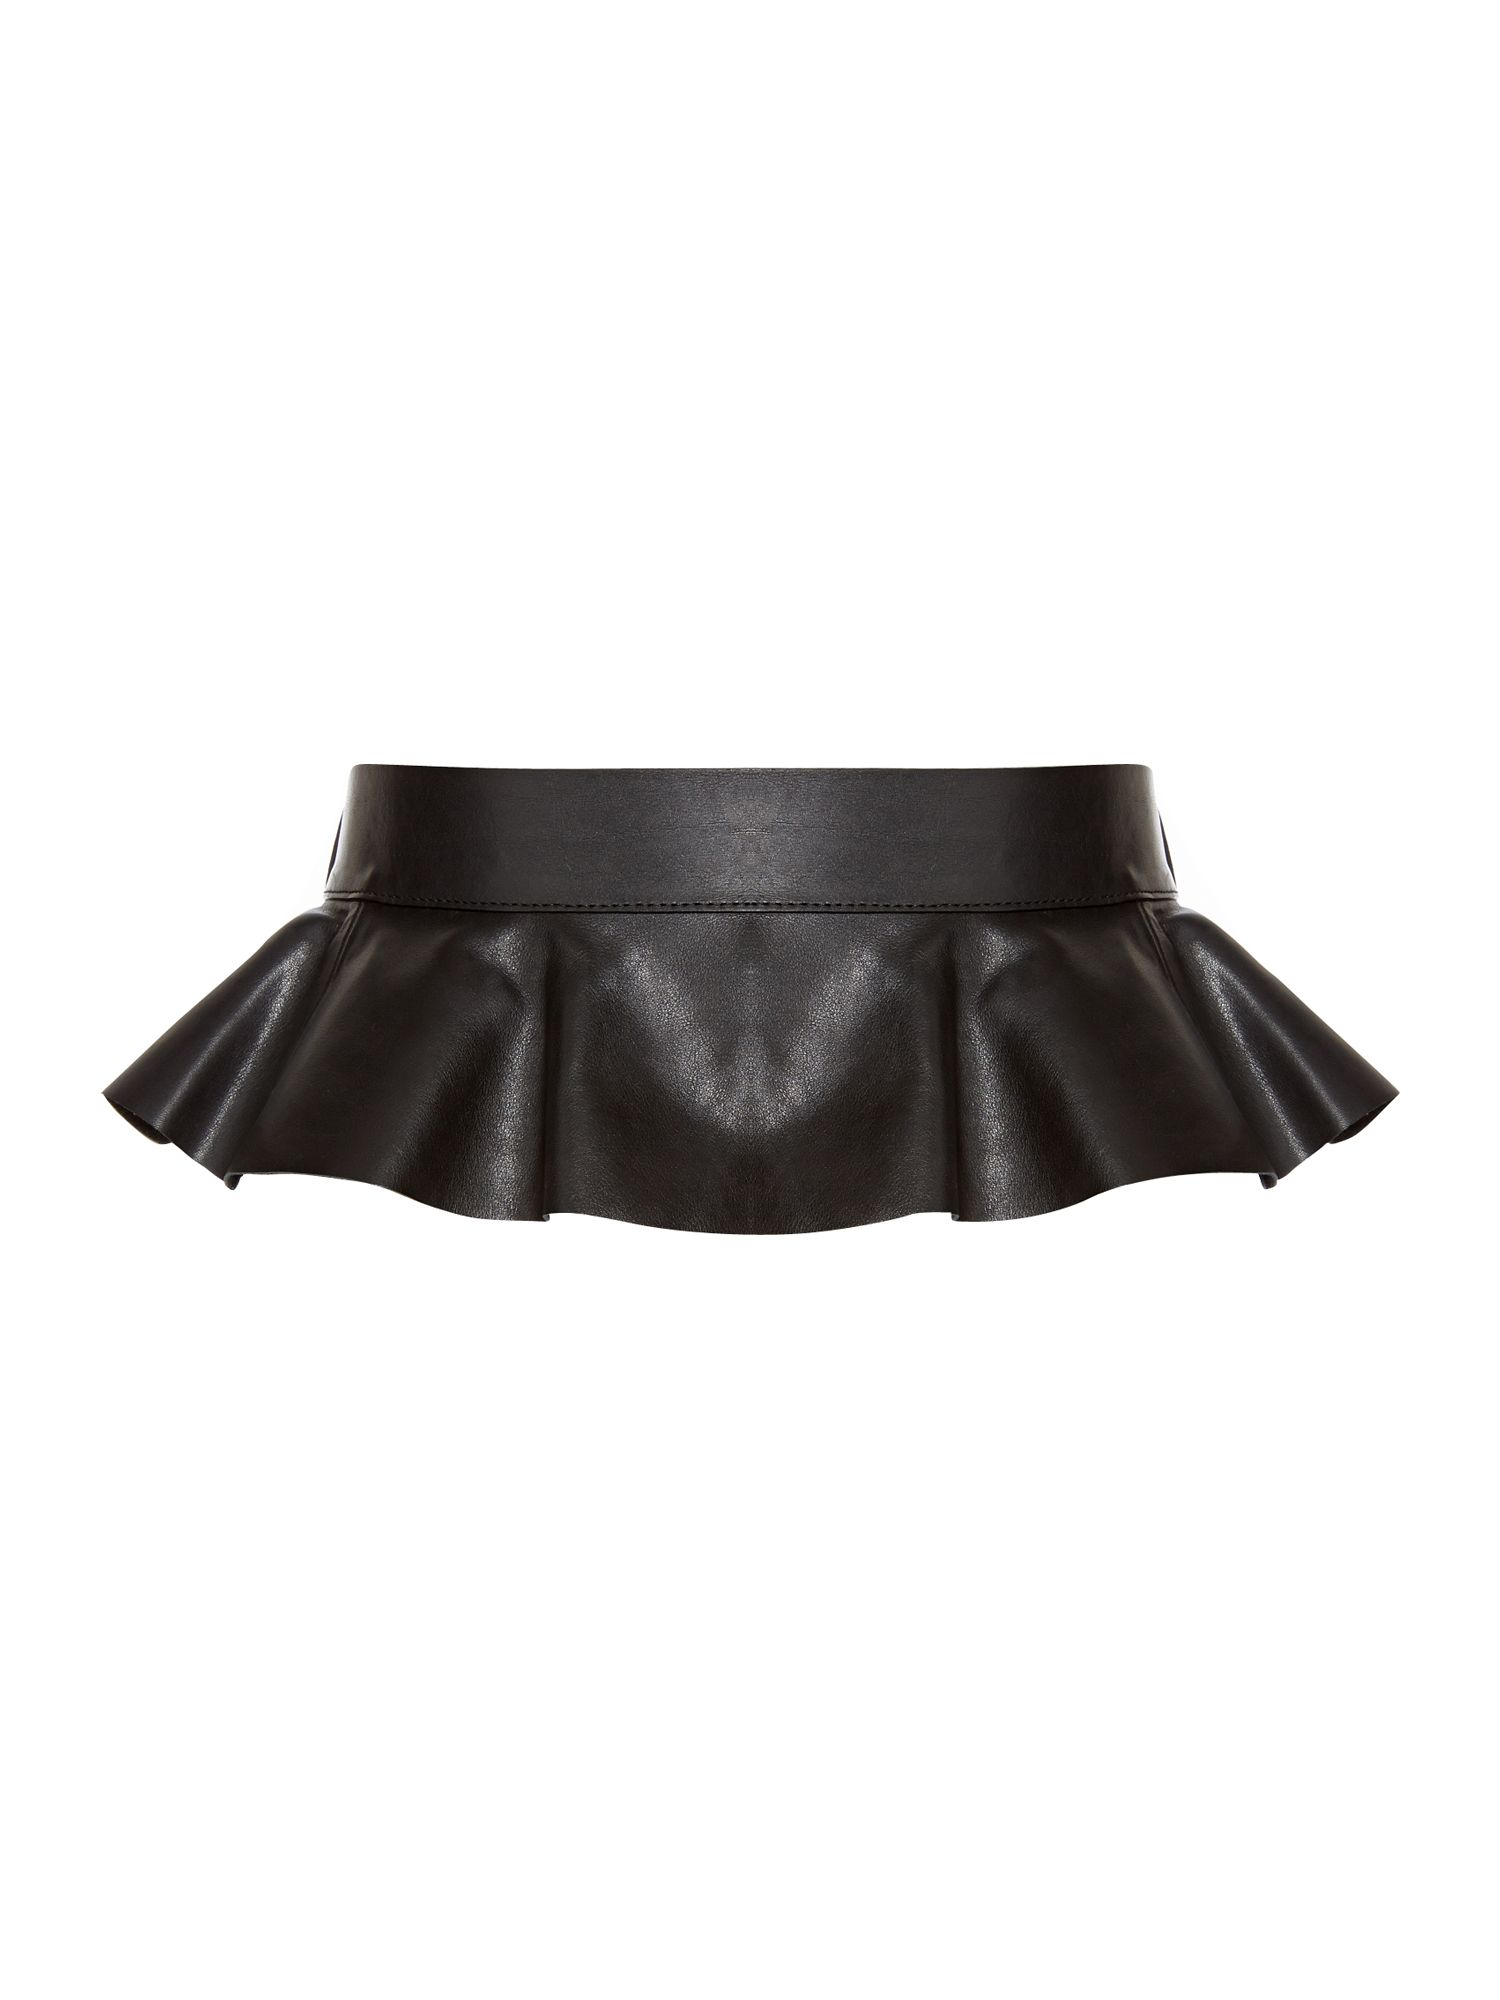 Peplum belt accessory